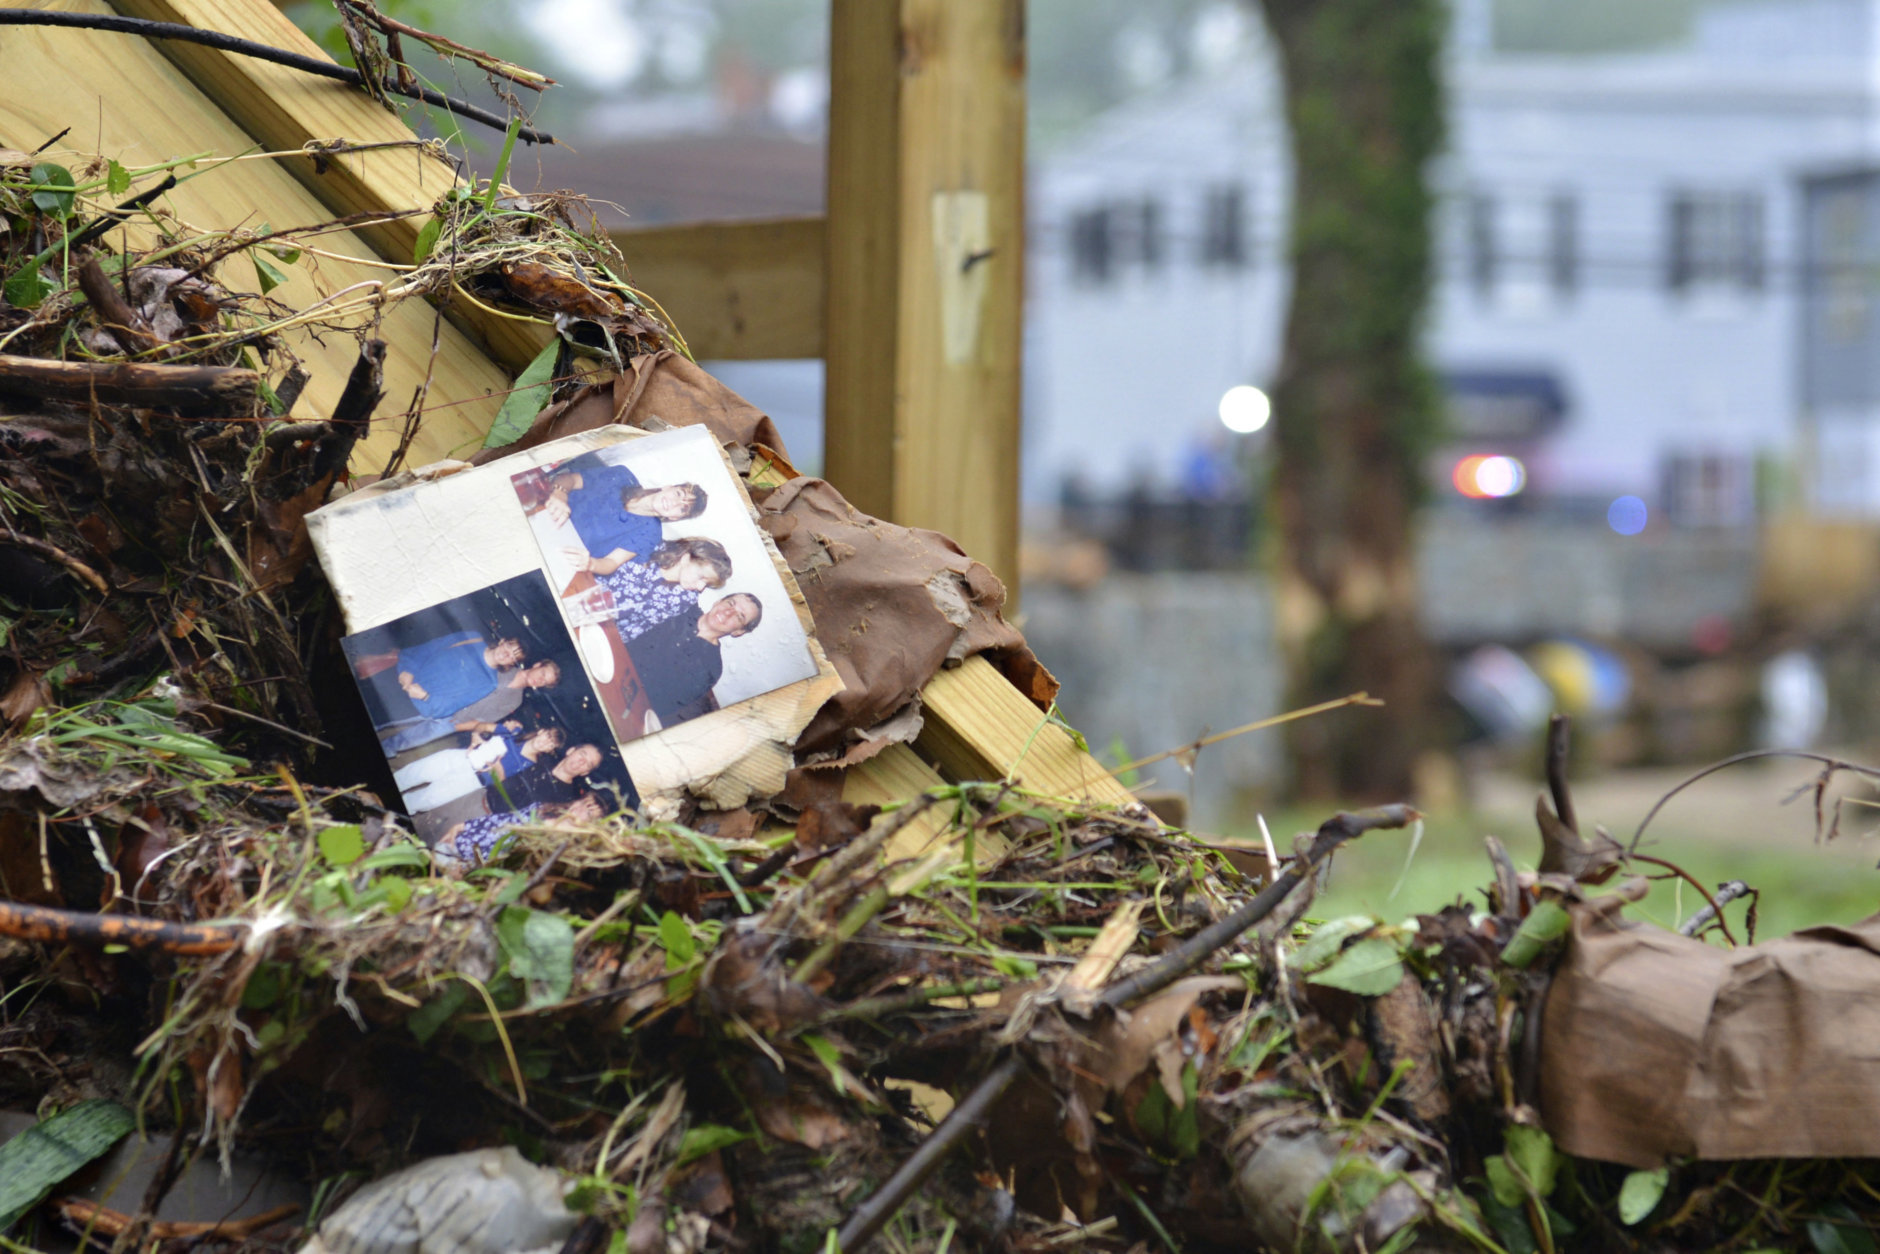 Family photos rest among debris after flash flooding in Ellicott City, Md., Monday, May 28, 2018. Sunday's destructive flooding left the former mill town heartbroken as it had bounded back from another destructive storm less than two years ago. (AP Photo/David McFadden)